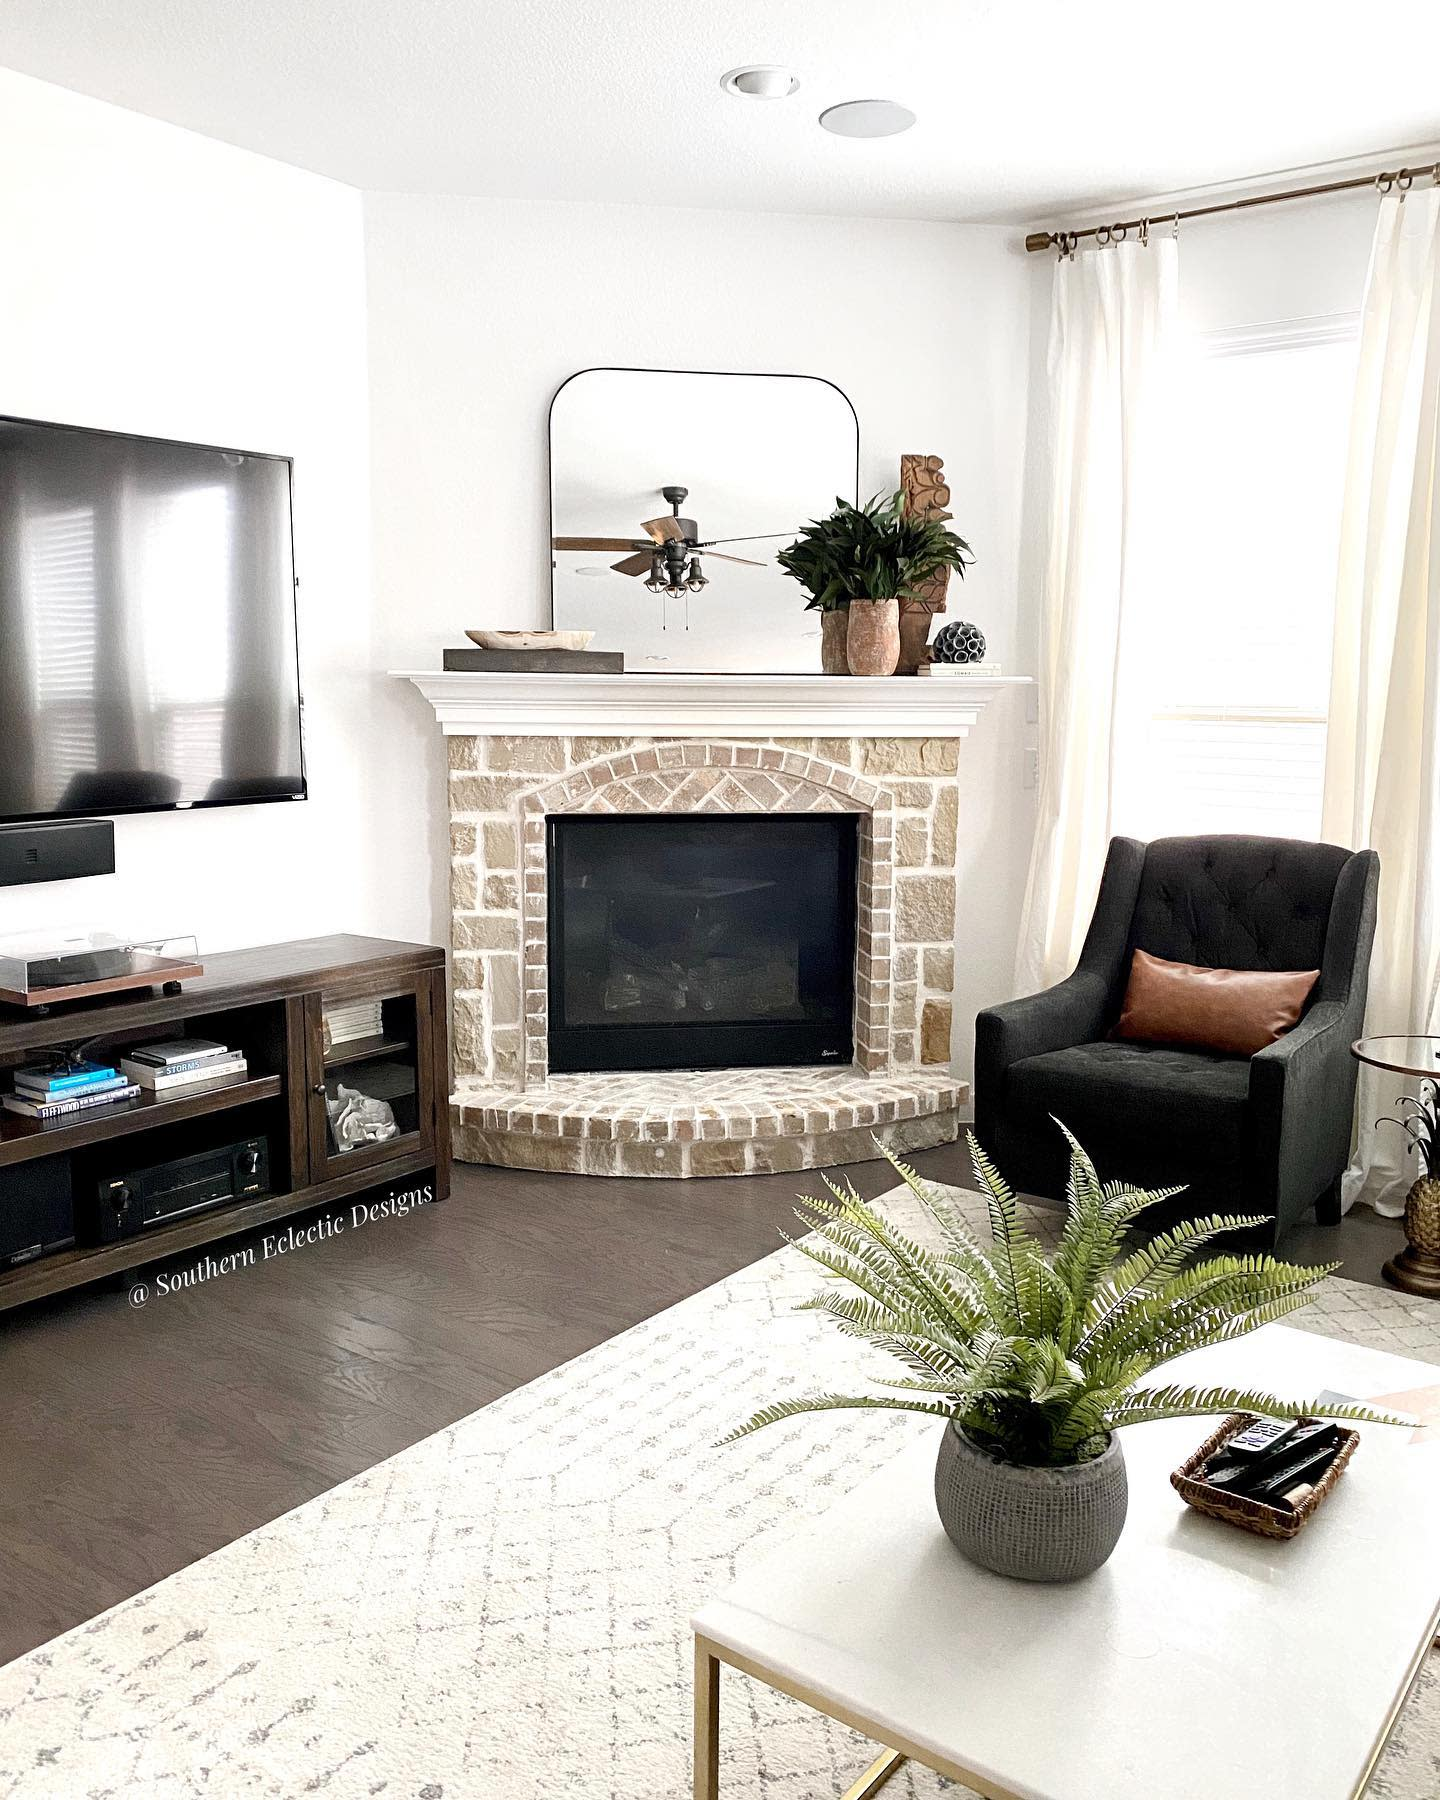 Mirror Fireplace Decor Ideas -southerneclecticdesigns